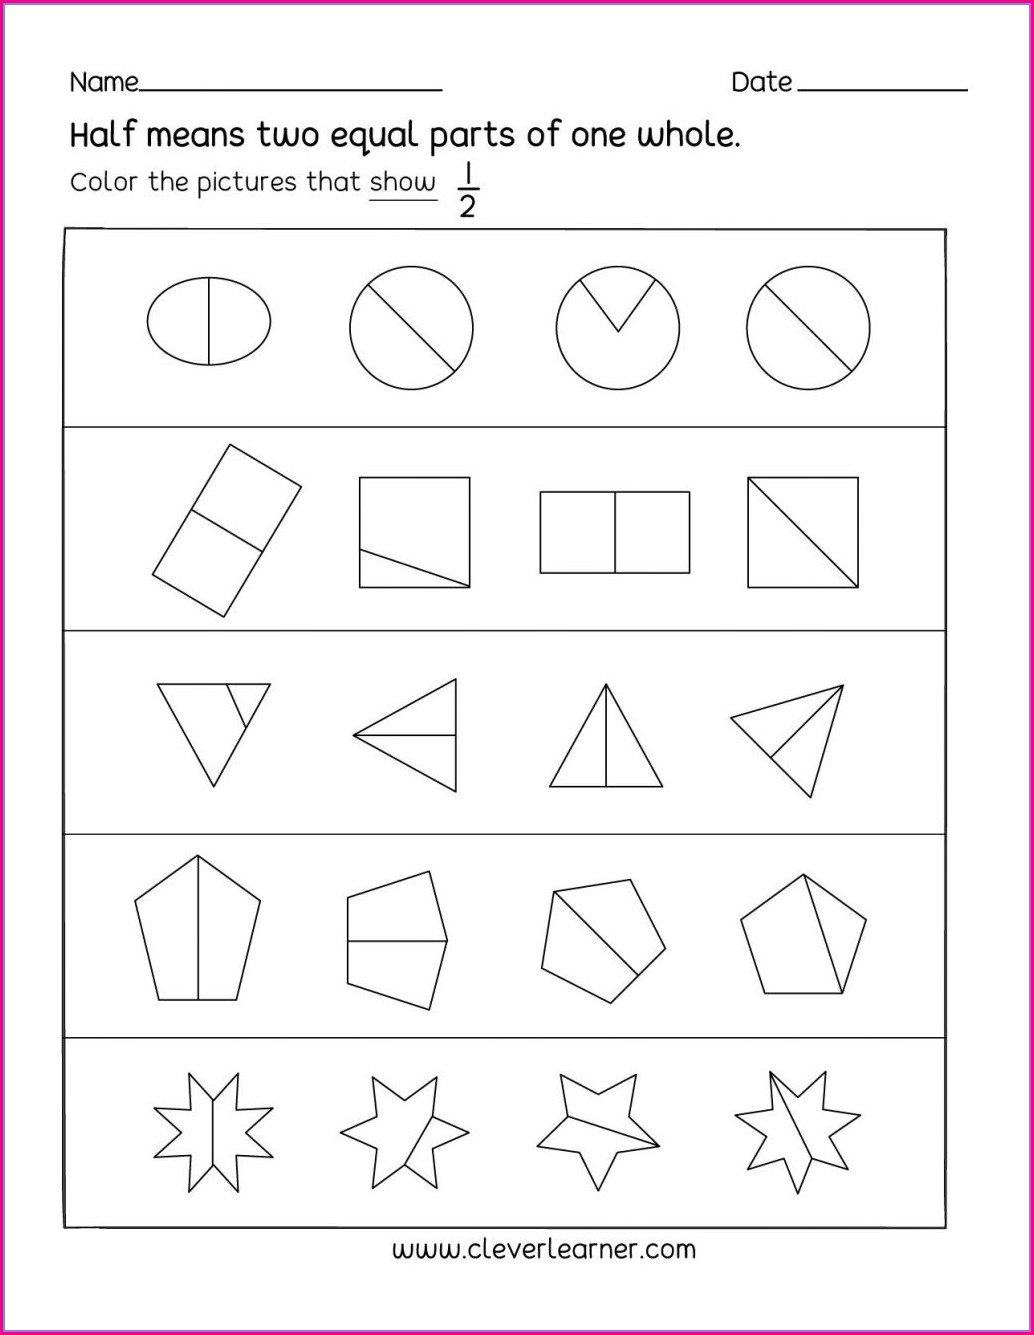 Matching Alphabet Worksheet For Kindergarten